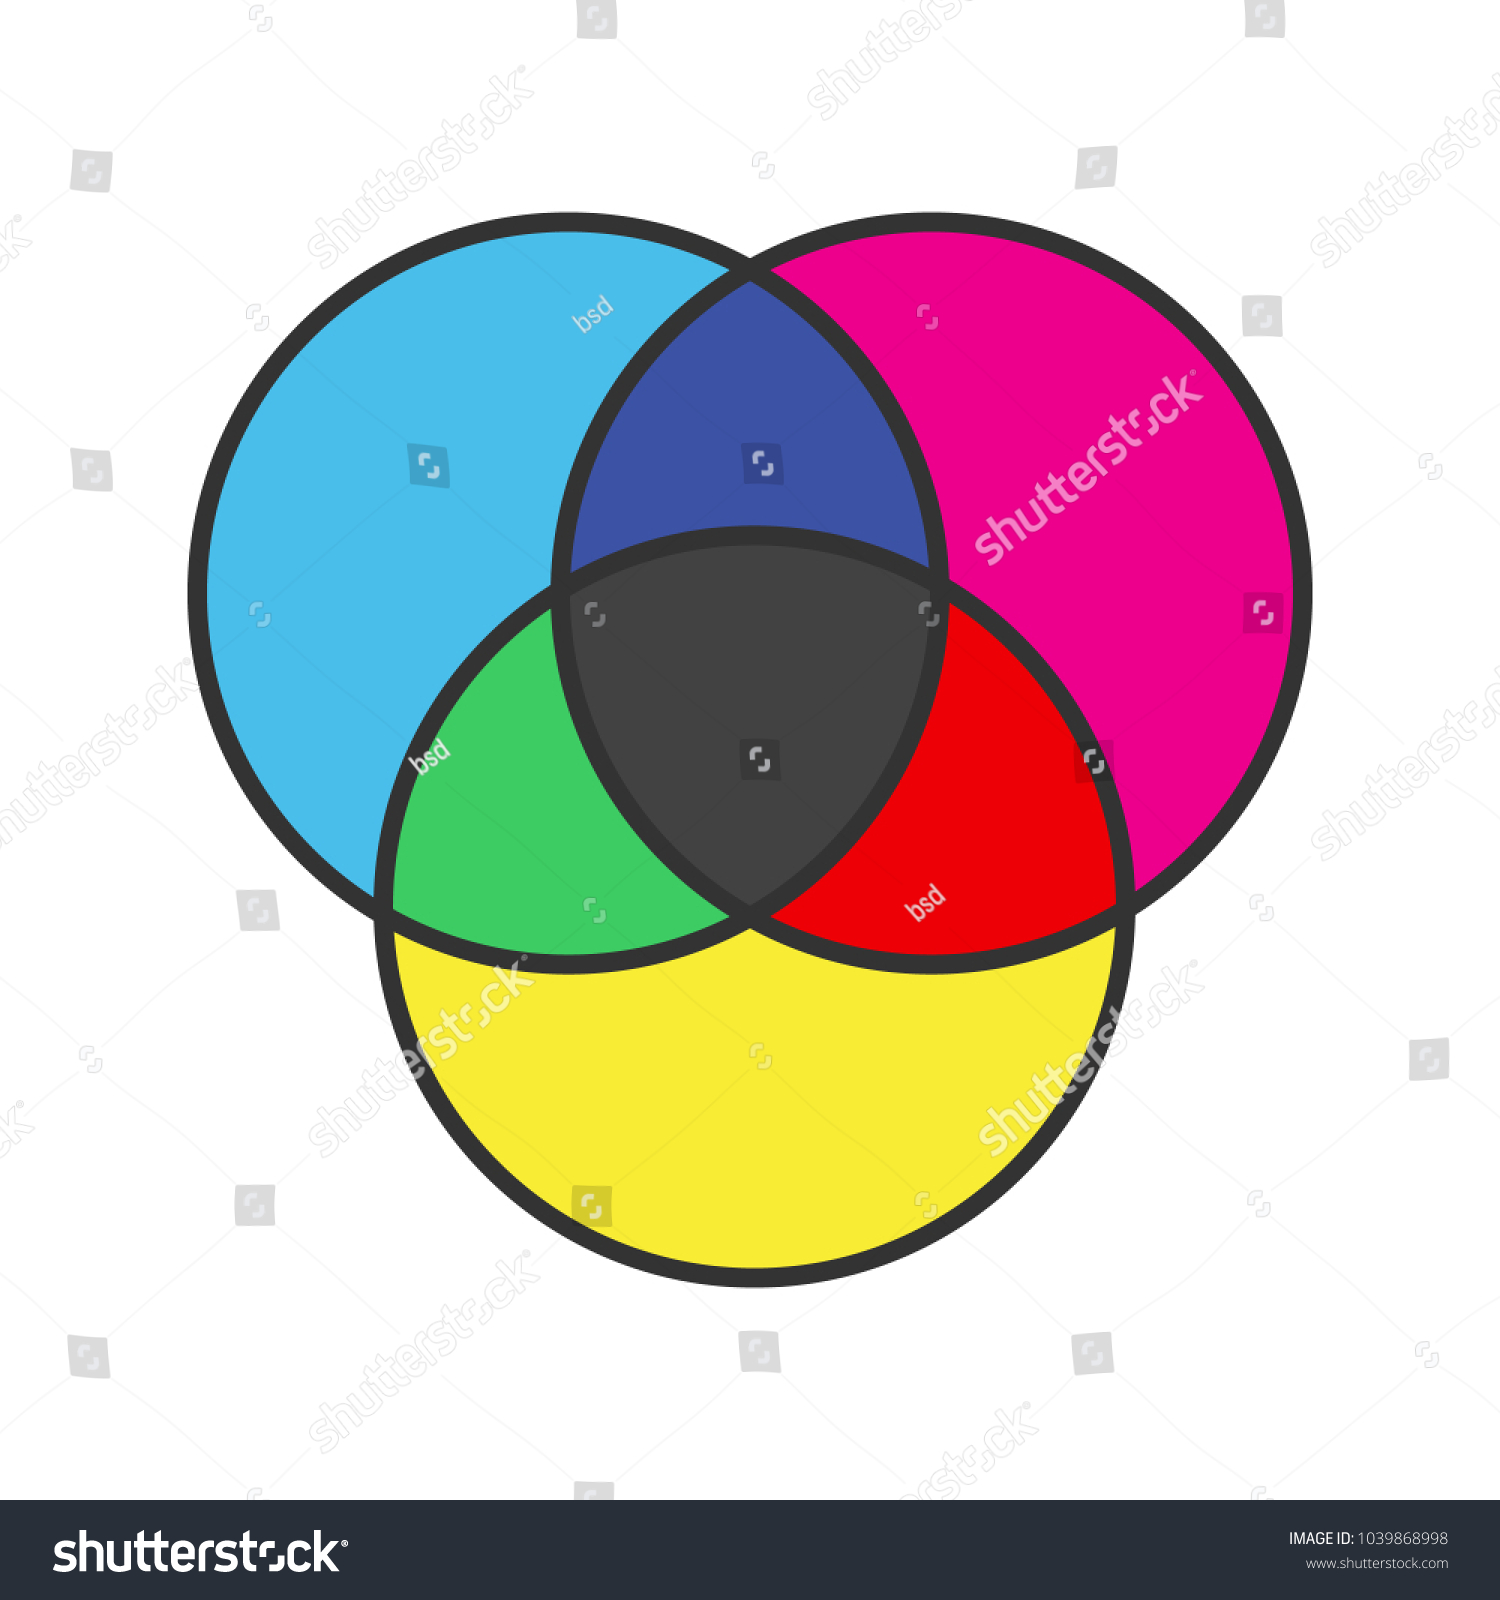 Cmyk rgb color circles icon venn stock vector 1039868998 shutterstock cmyk or rgb color circles icon venn diagram overlapping circles isolated vector illustration ccuart Image collections